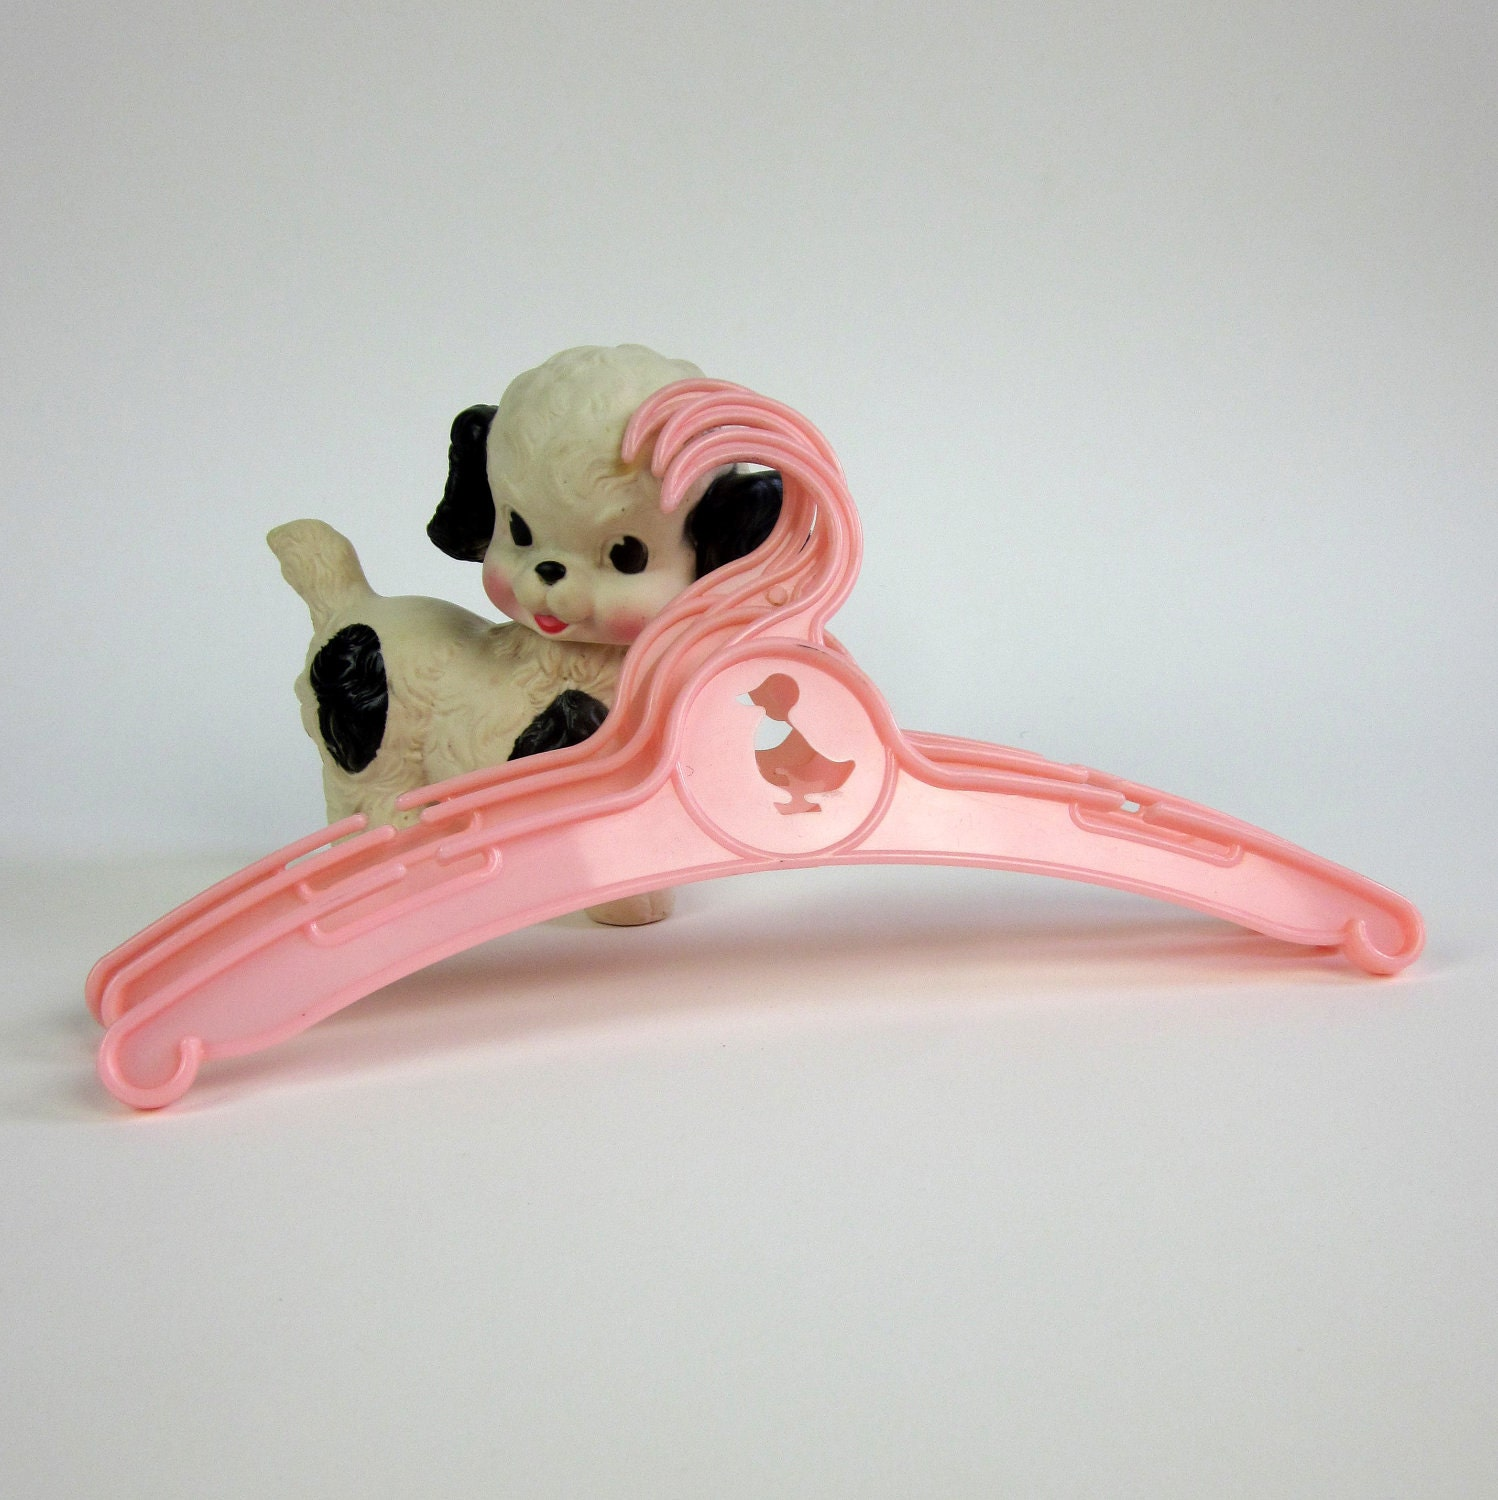 Pink Baby Clothes Hangers 50s / Duckie Cut Out / Set of 3 - OopseeDaisies